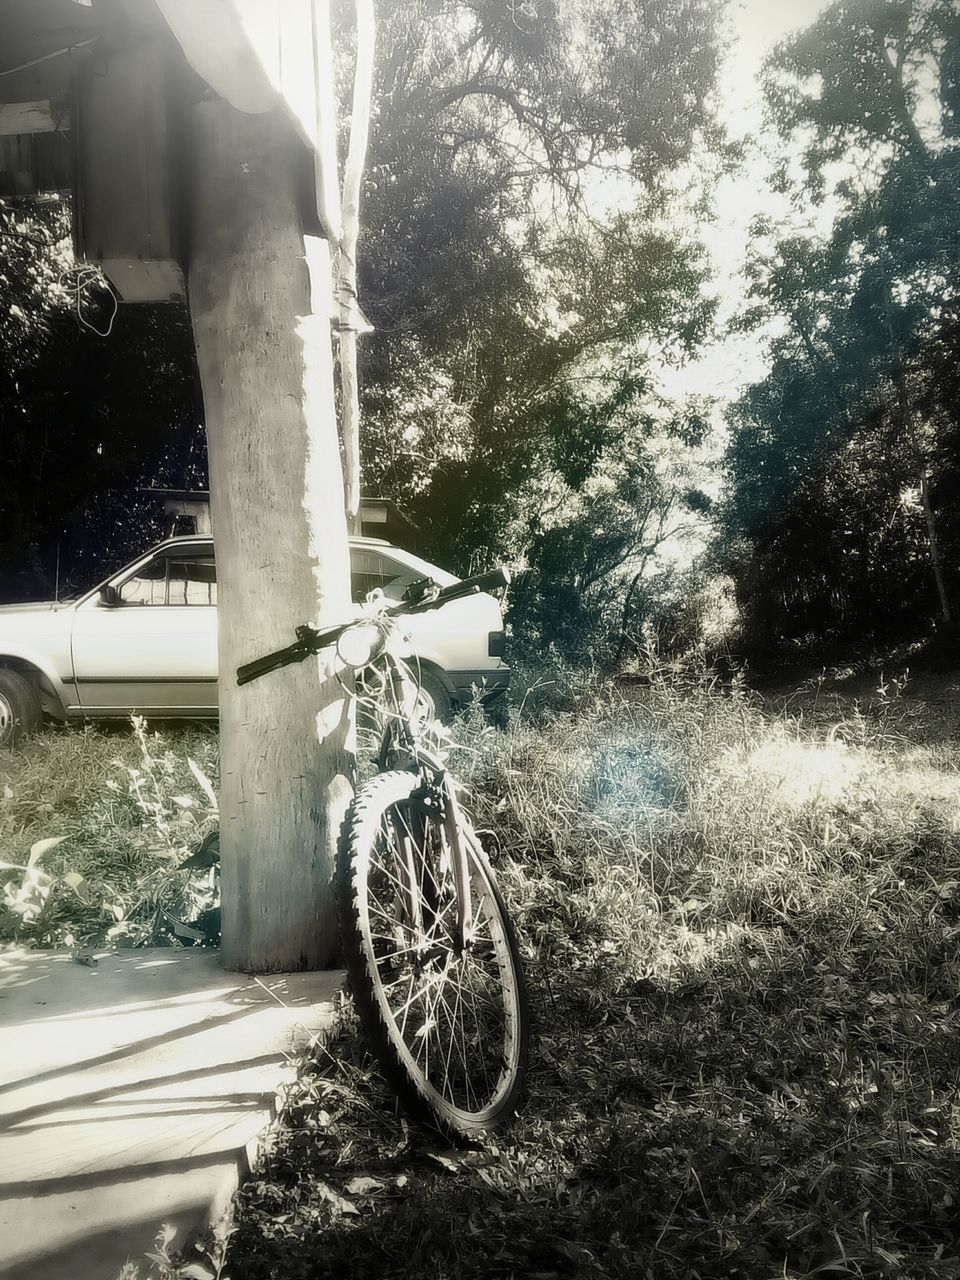 transportation, bicycle, tree, mode of transport, wheel, land vehicle, day, outdoors, no people, tire, stationary, grass, nature, close-up, sky